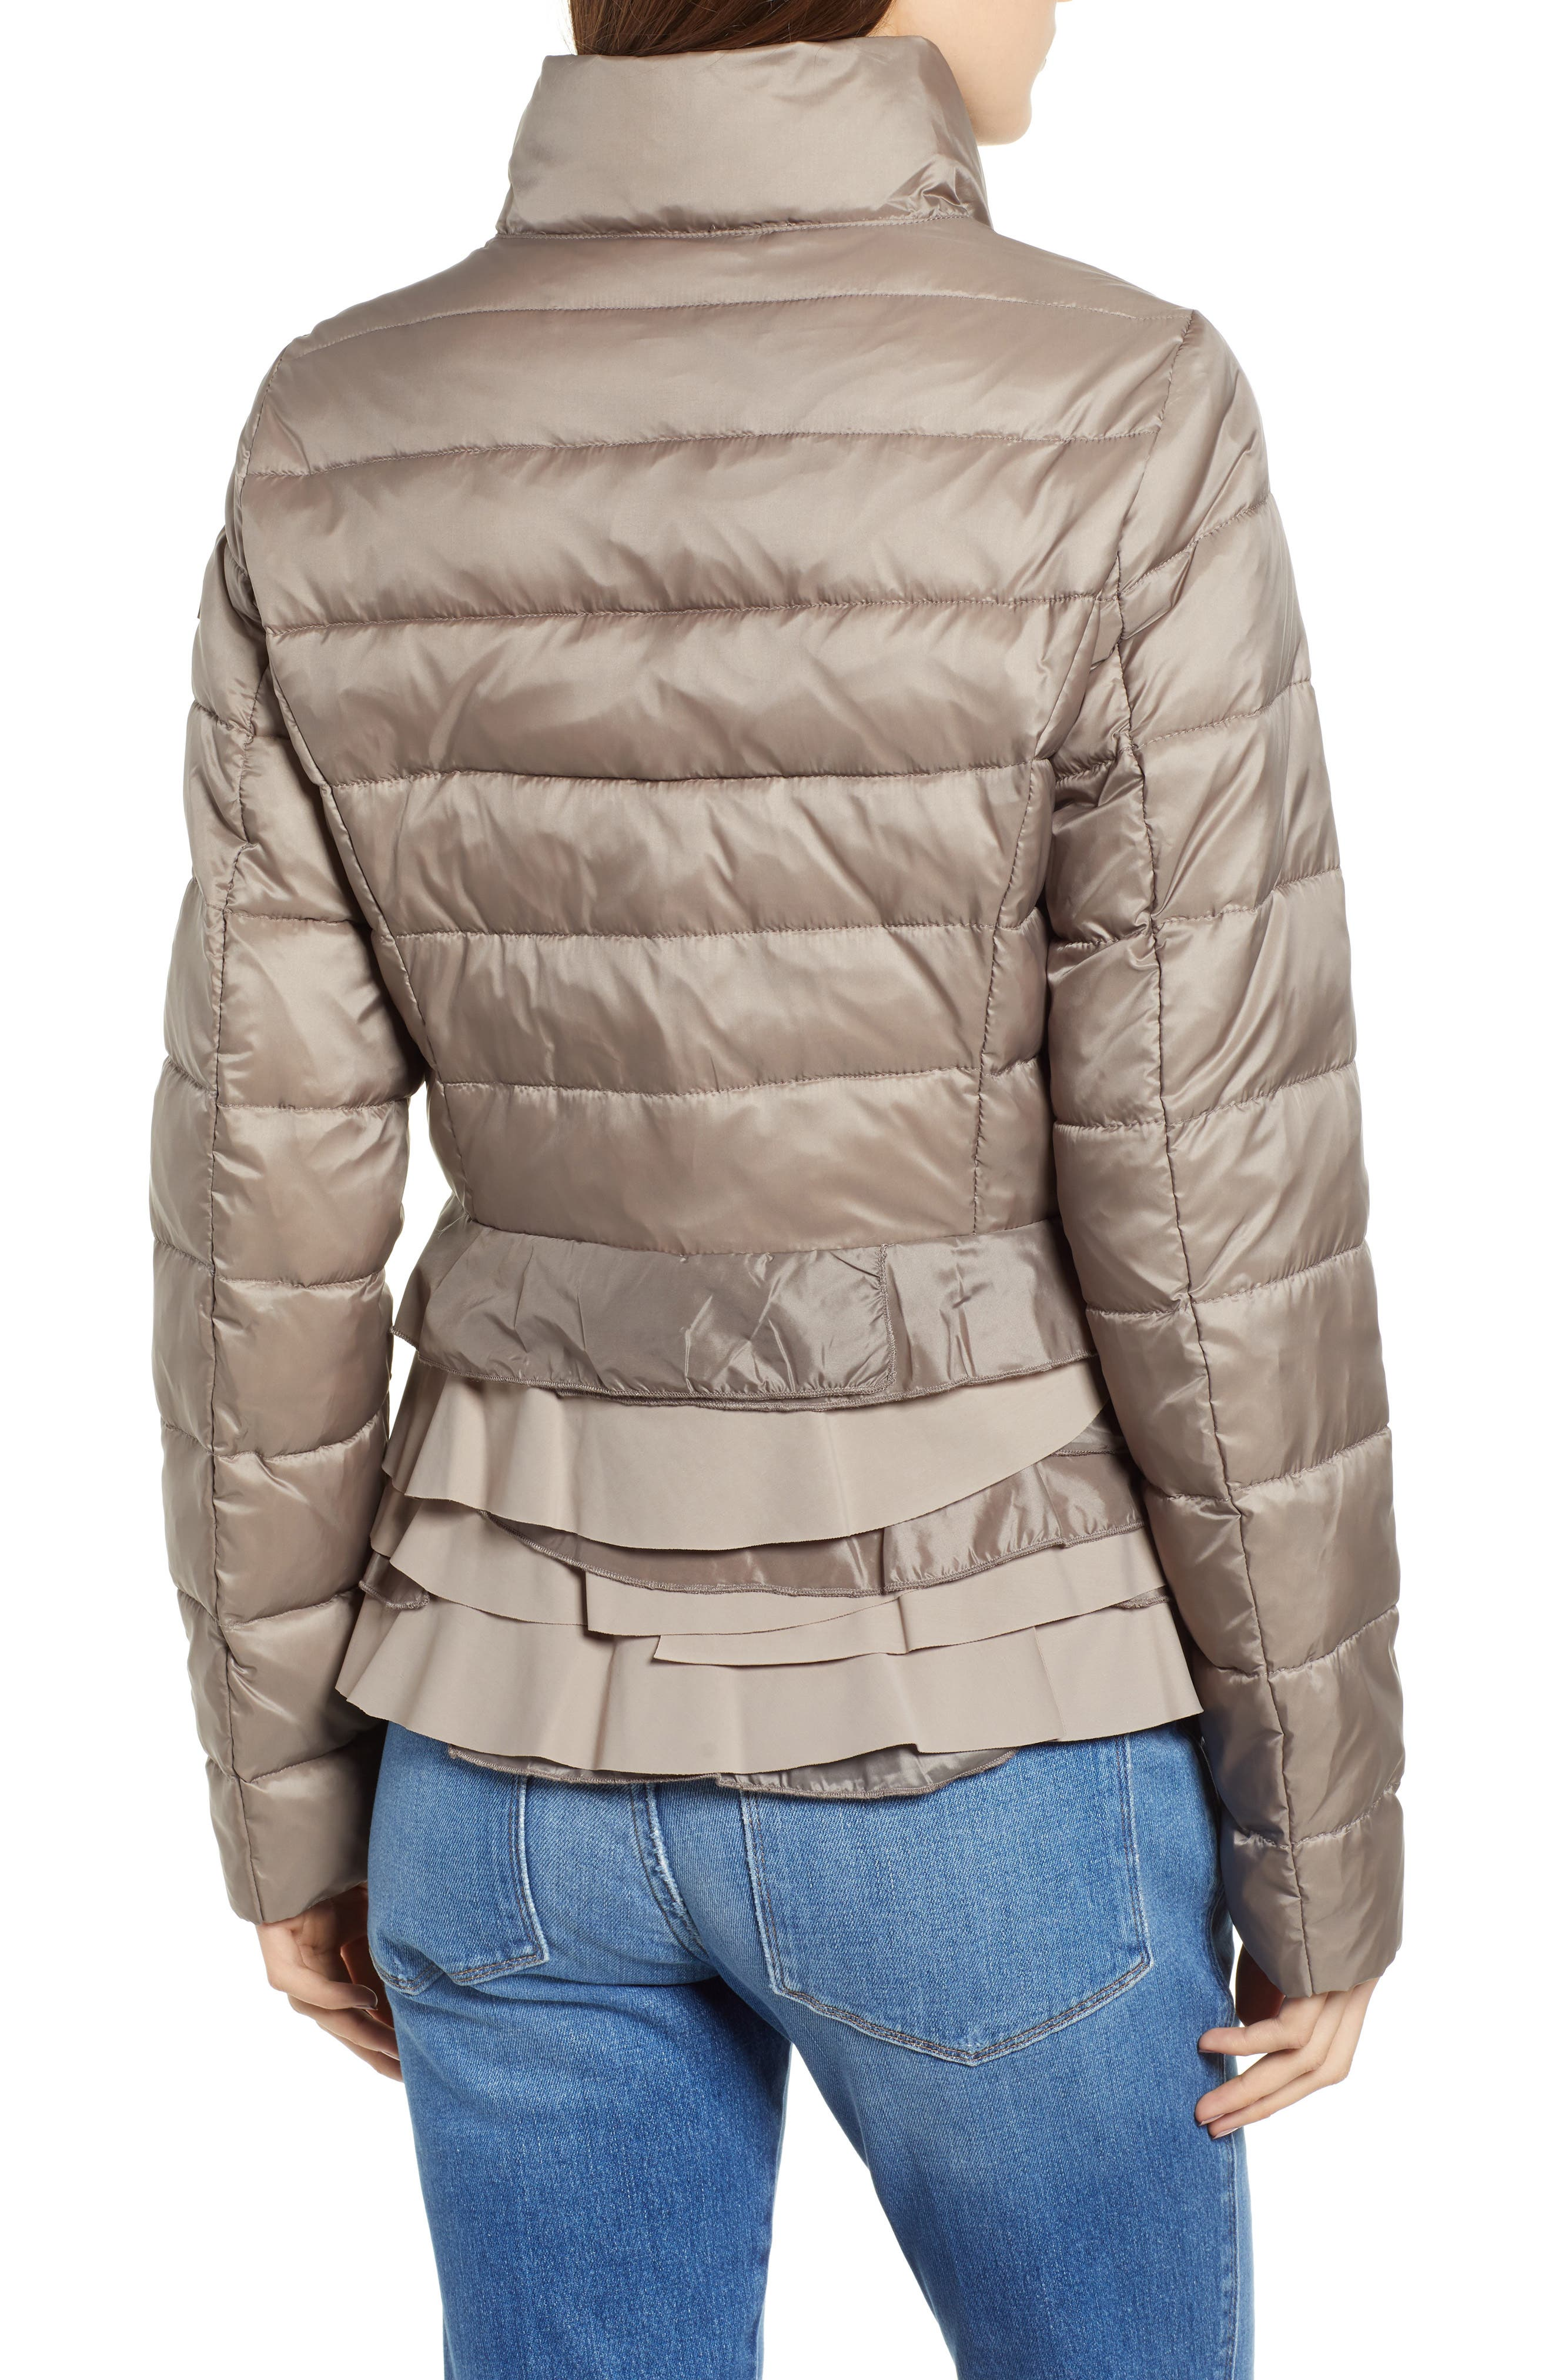 TAHARI, Zoey Ruffle Hem Puffer Jacket, Alternate thumbnail 2, color, TRUFFLE